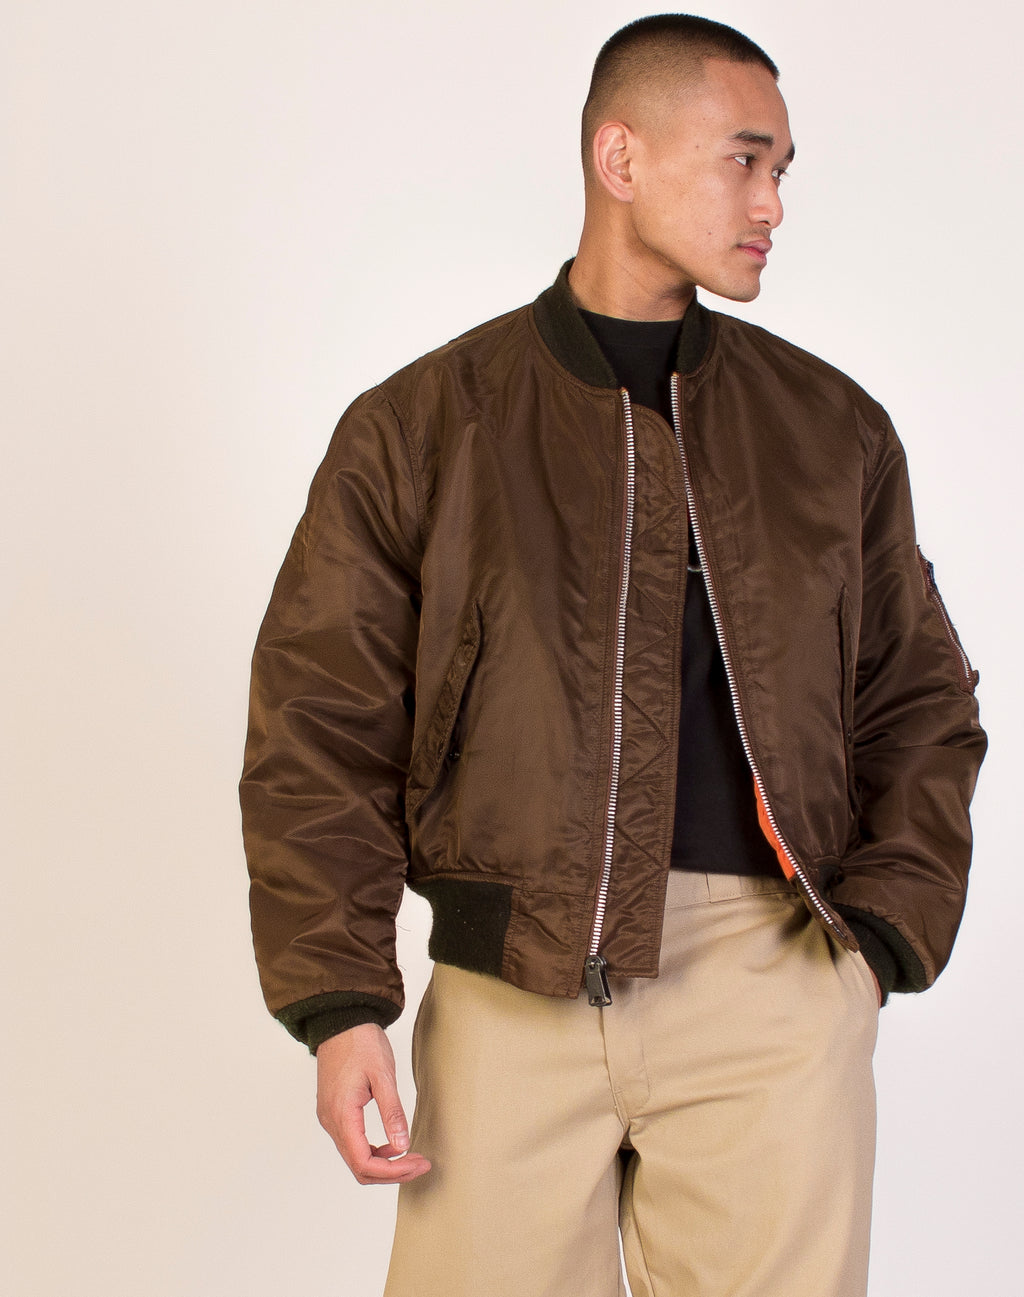 BROWN REFLECTIVE BOMBER JACKET